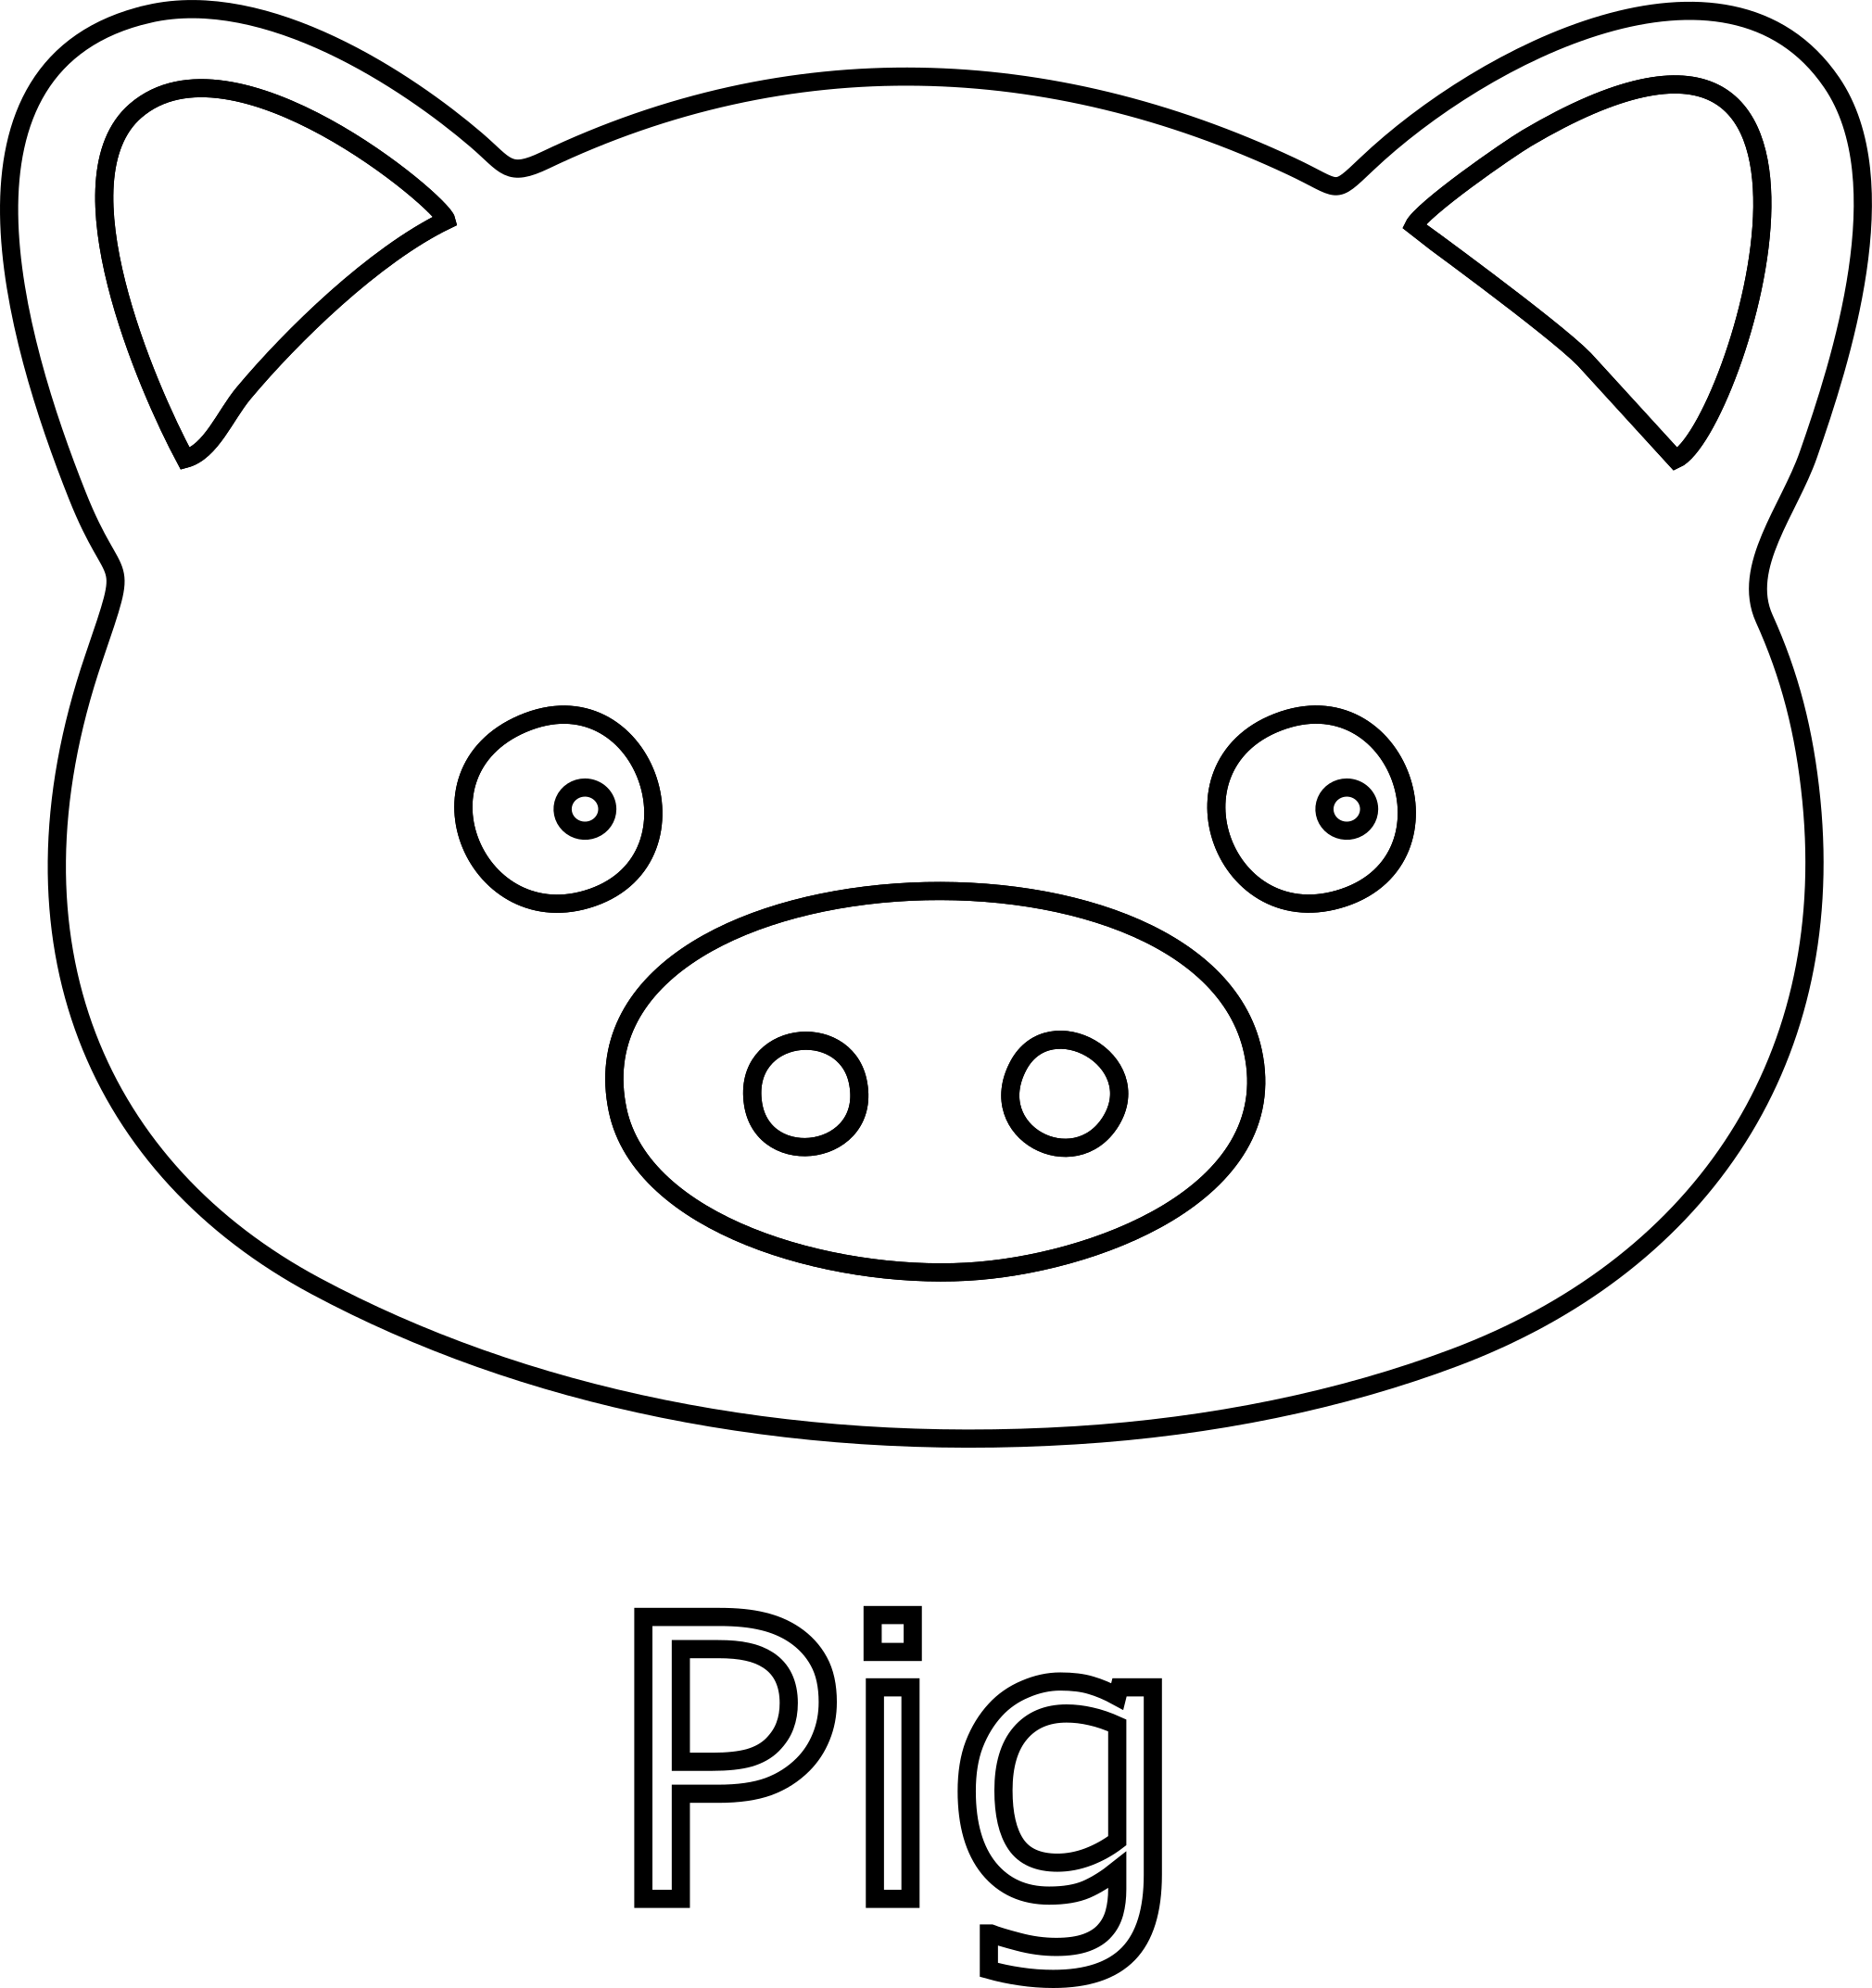 2020x2145 Unique Pig Face Line Art Black Image Daily Cliparts For You